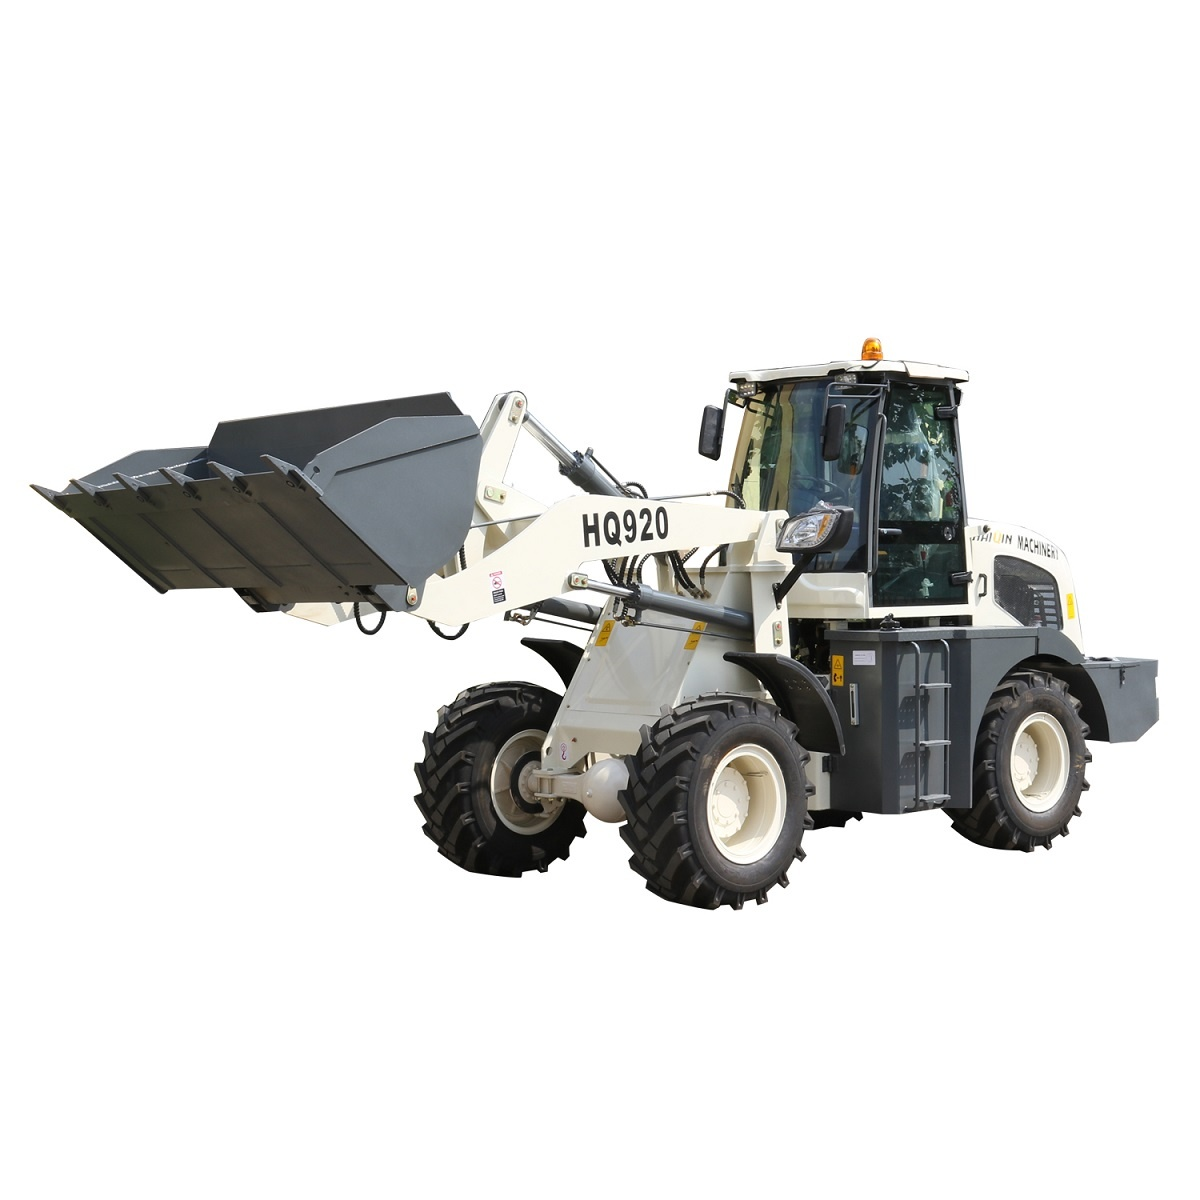 HQ920 wheel loader